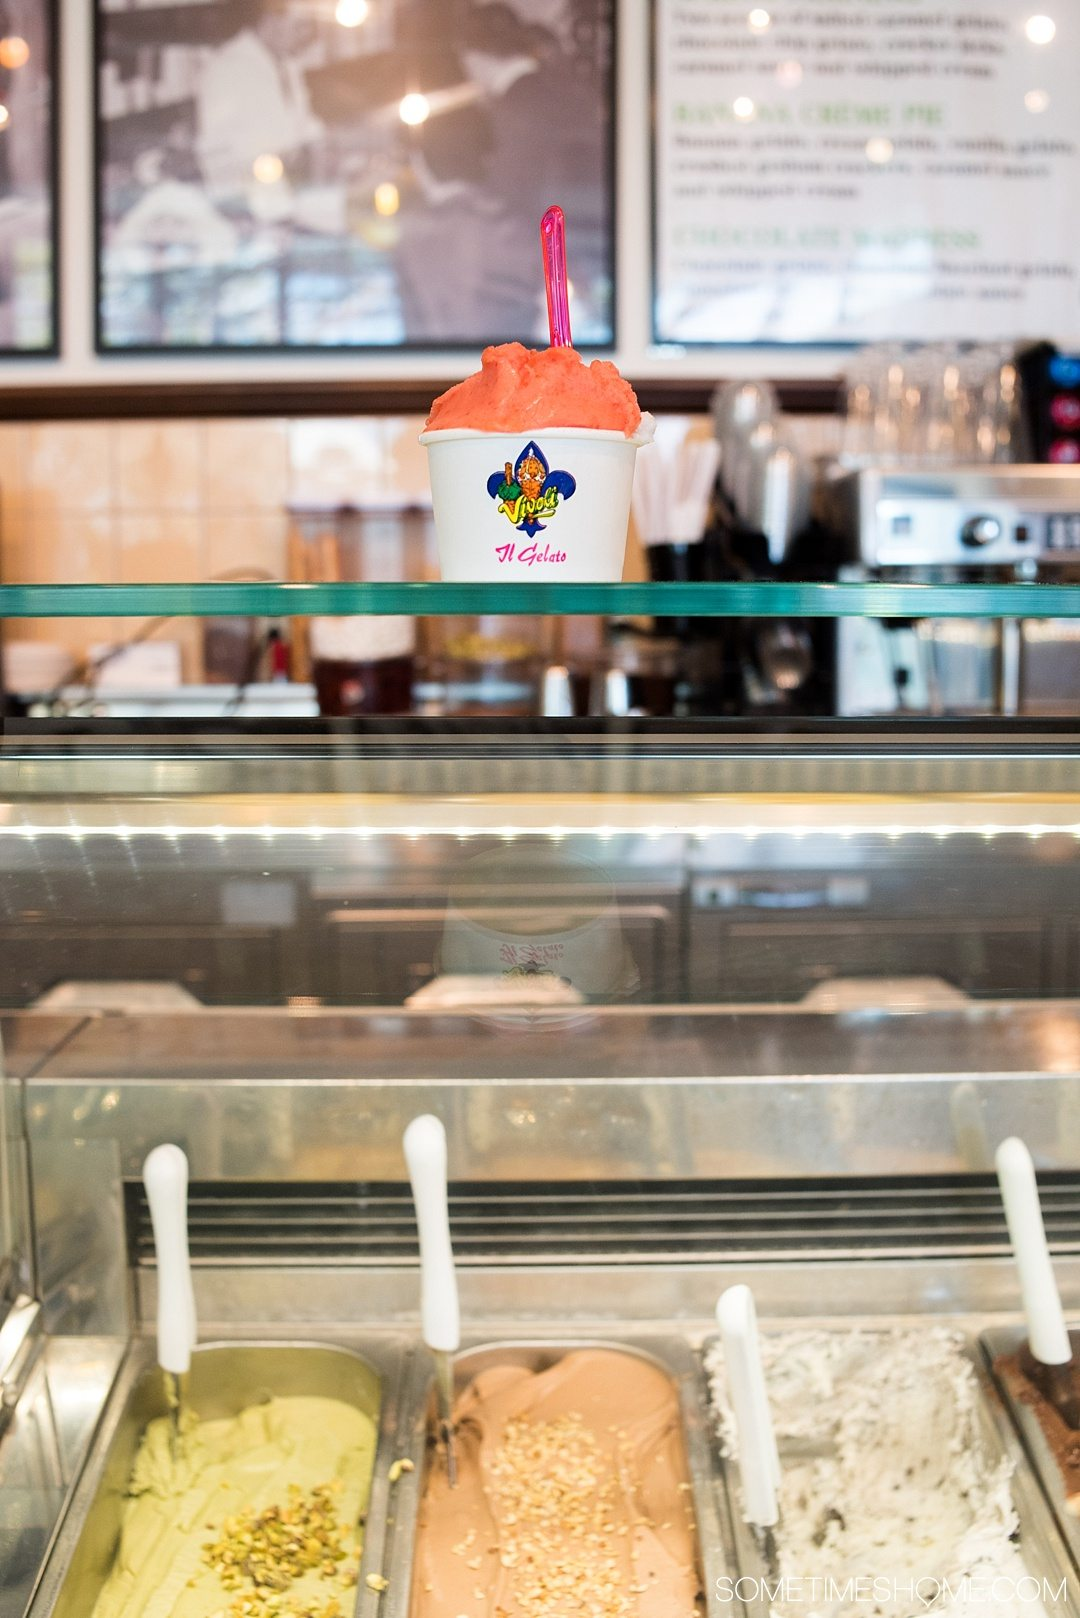 Heading to Walt Disney World? Definitely travel to Disney Springs (formally known as Downtown Disney) for a trip and indulgence in food! We dish on ideas for the best Disney Springs desserts (like fresh sorbet) with photography at this Orlando, Florida themed area. Click through to Sometimes Home for detailed tips! #DisneySprings #WaltDisneyWorld #DisneyWorld